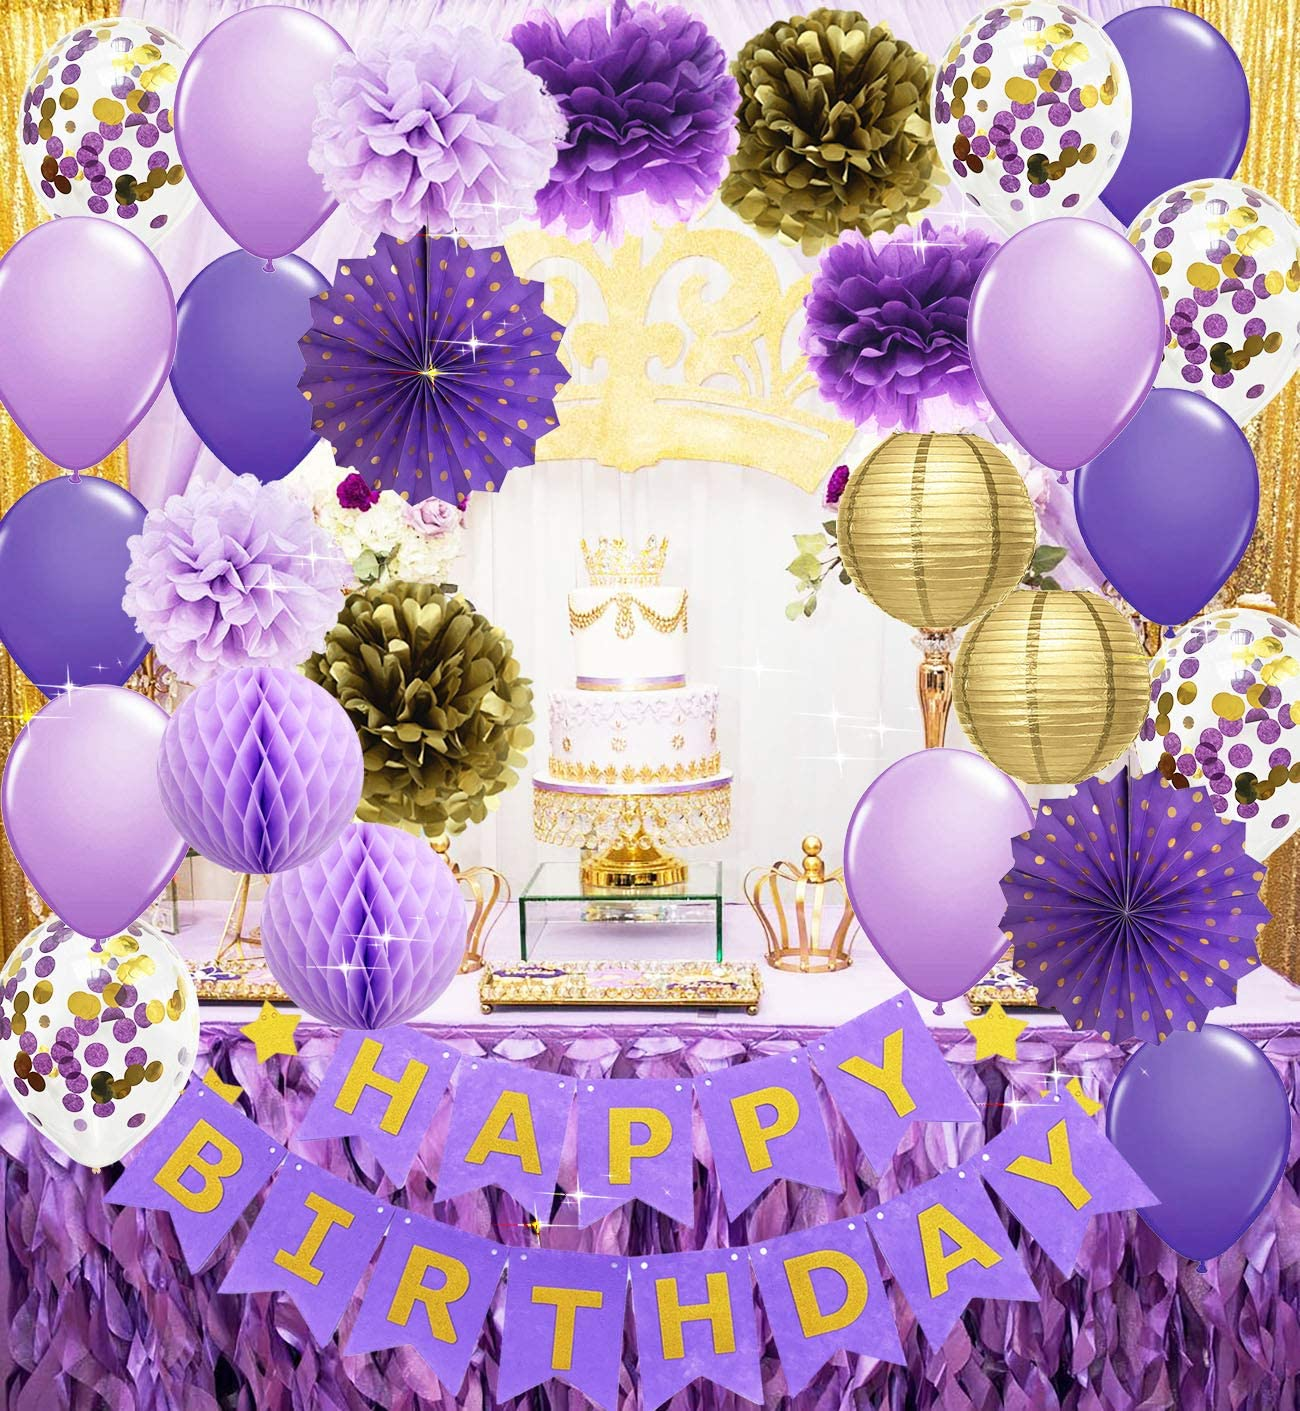 Purple Gold Birthday Party Decorations Happy Birthday Banner Purple Gold Confetti Balloons Polka Dot Paper Fans for Women/Girl Purple Birthday Decorations Purple Gold Birthday Photo Backdrop